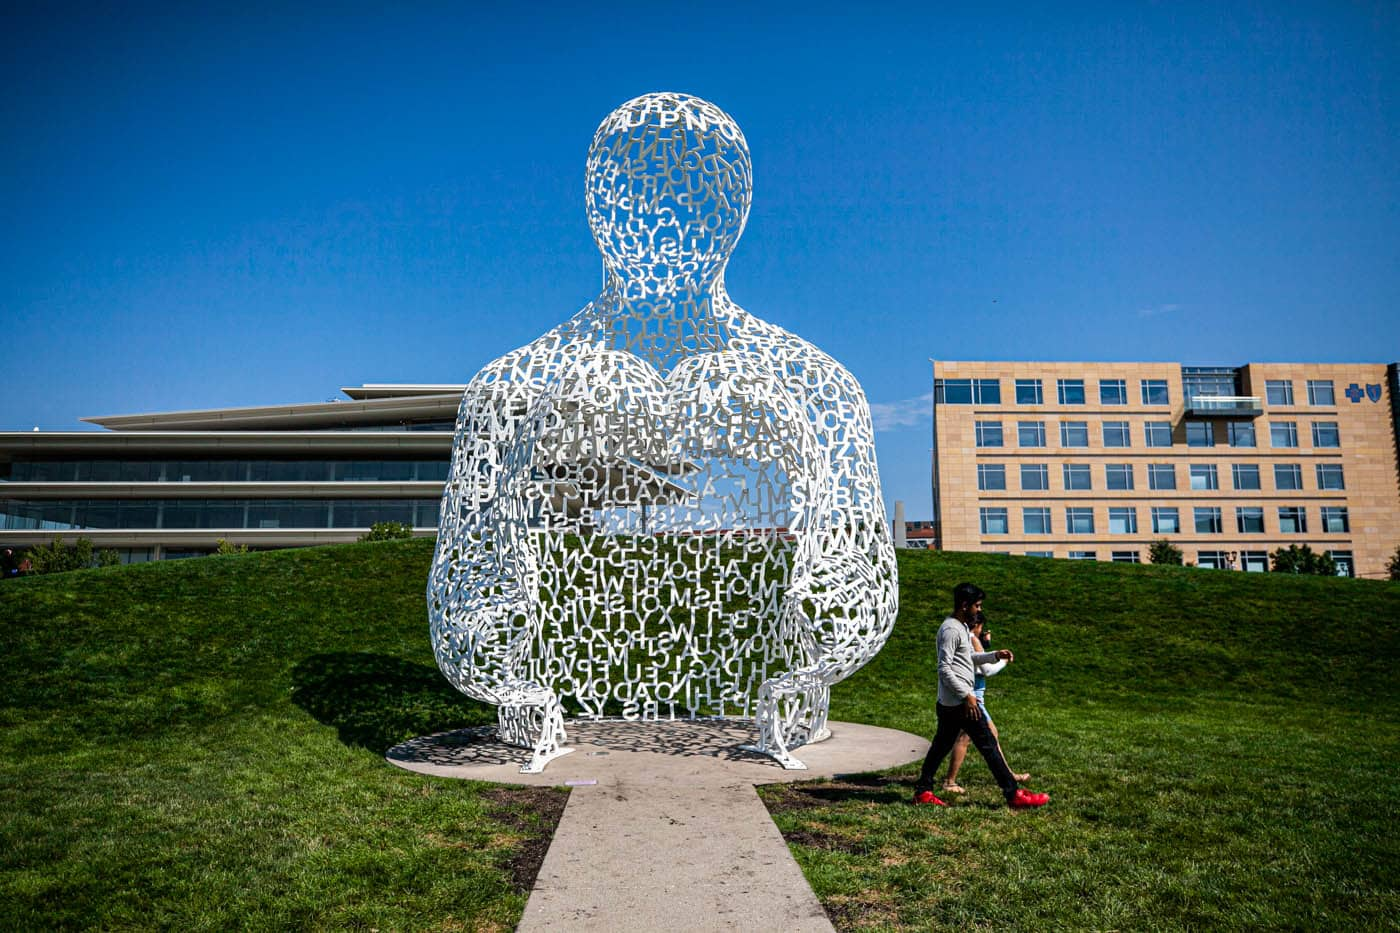 Nomade by artist Jaume Plensa | Figure made from white letters | Pappajohn Sculpture Park in Des Moines, Iowa